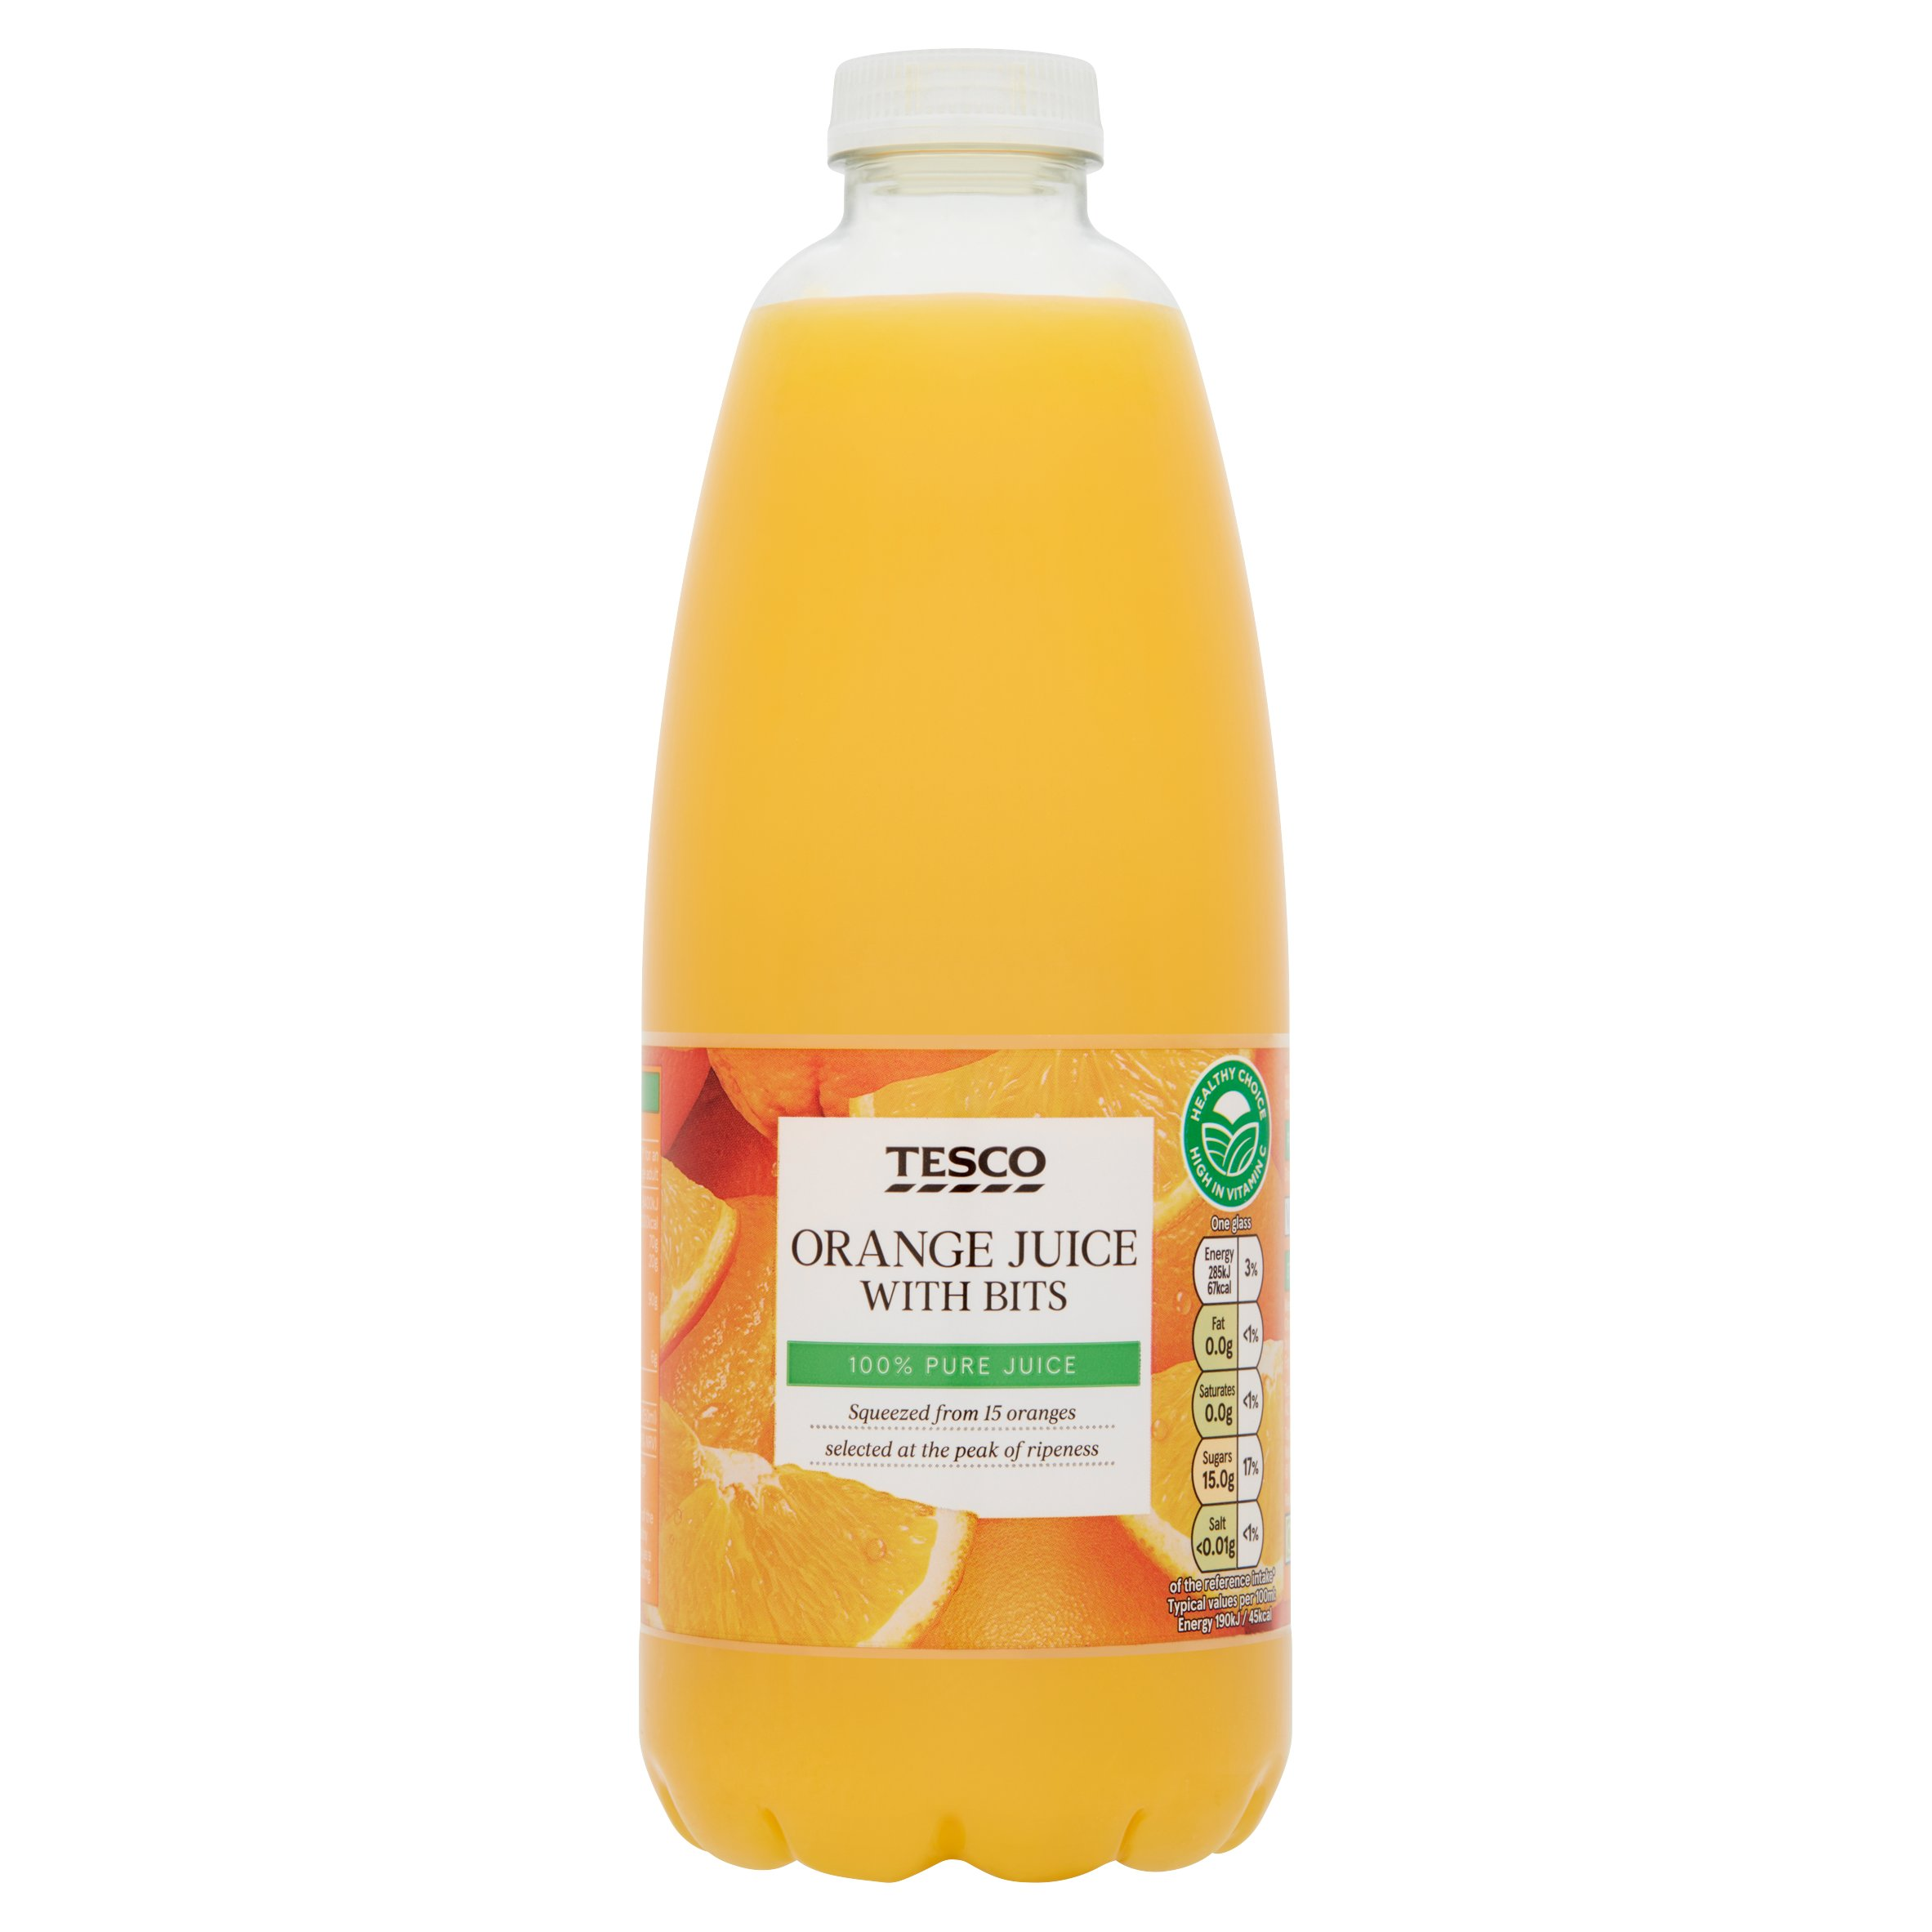 Tesco Orange Juice With Bits Not From Concentrate 1L